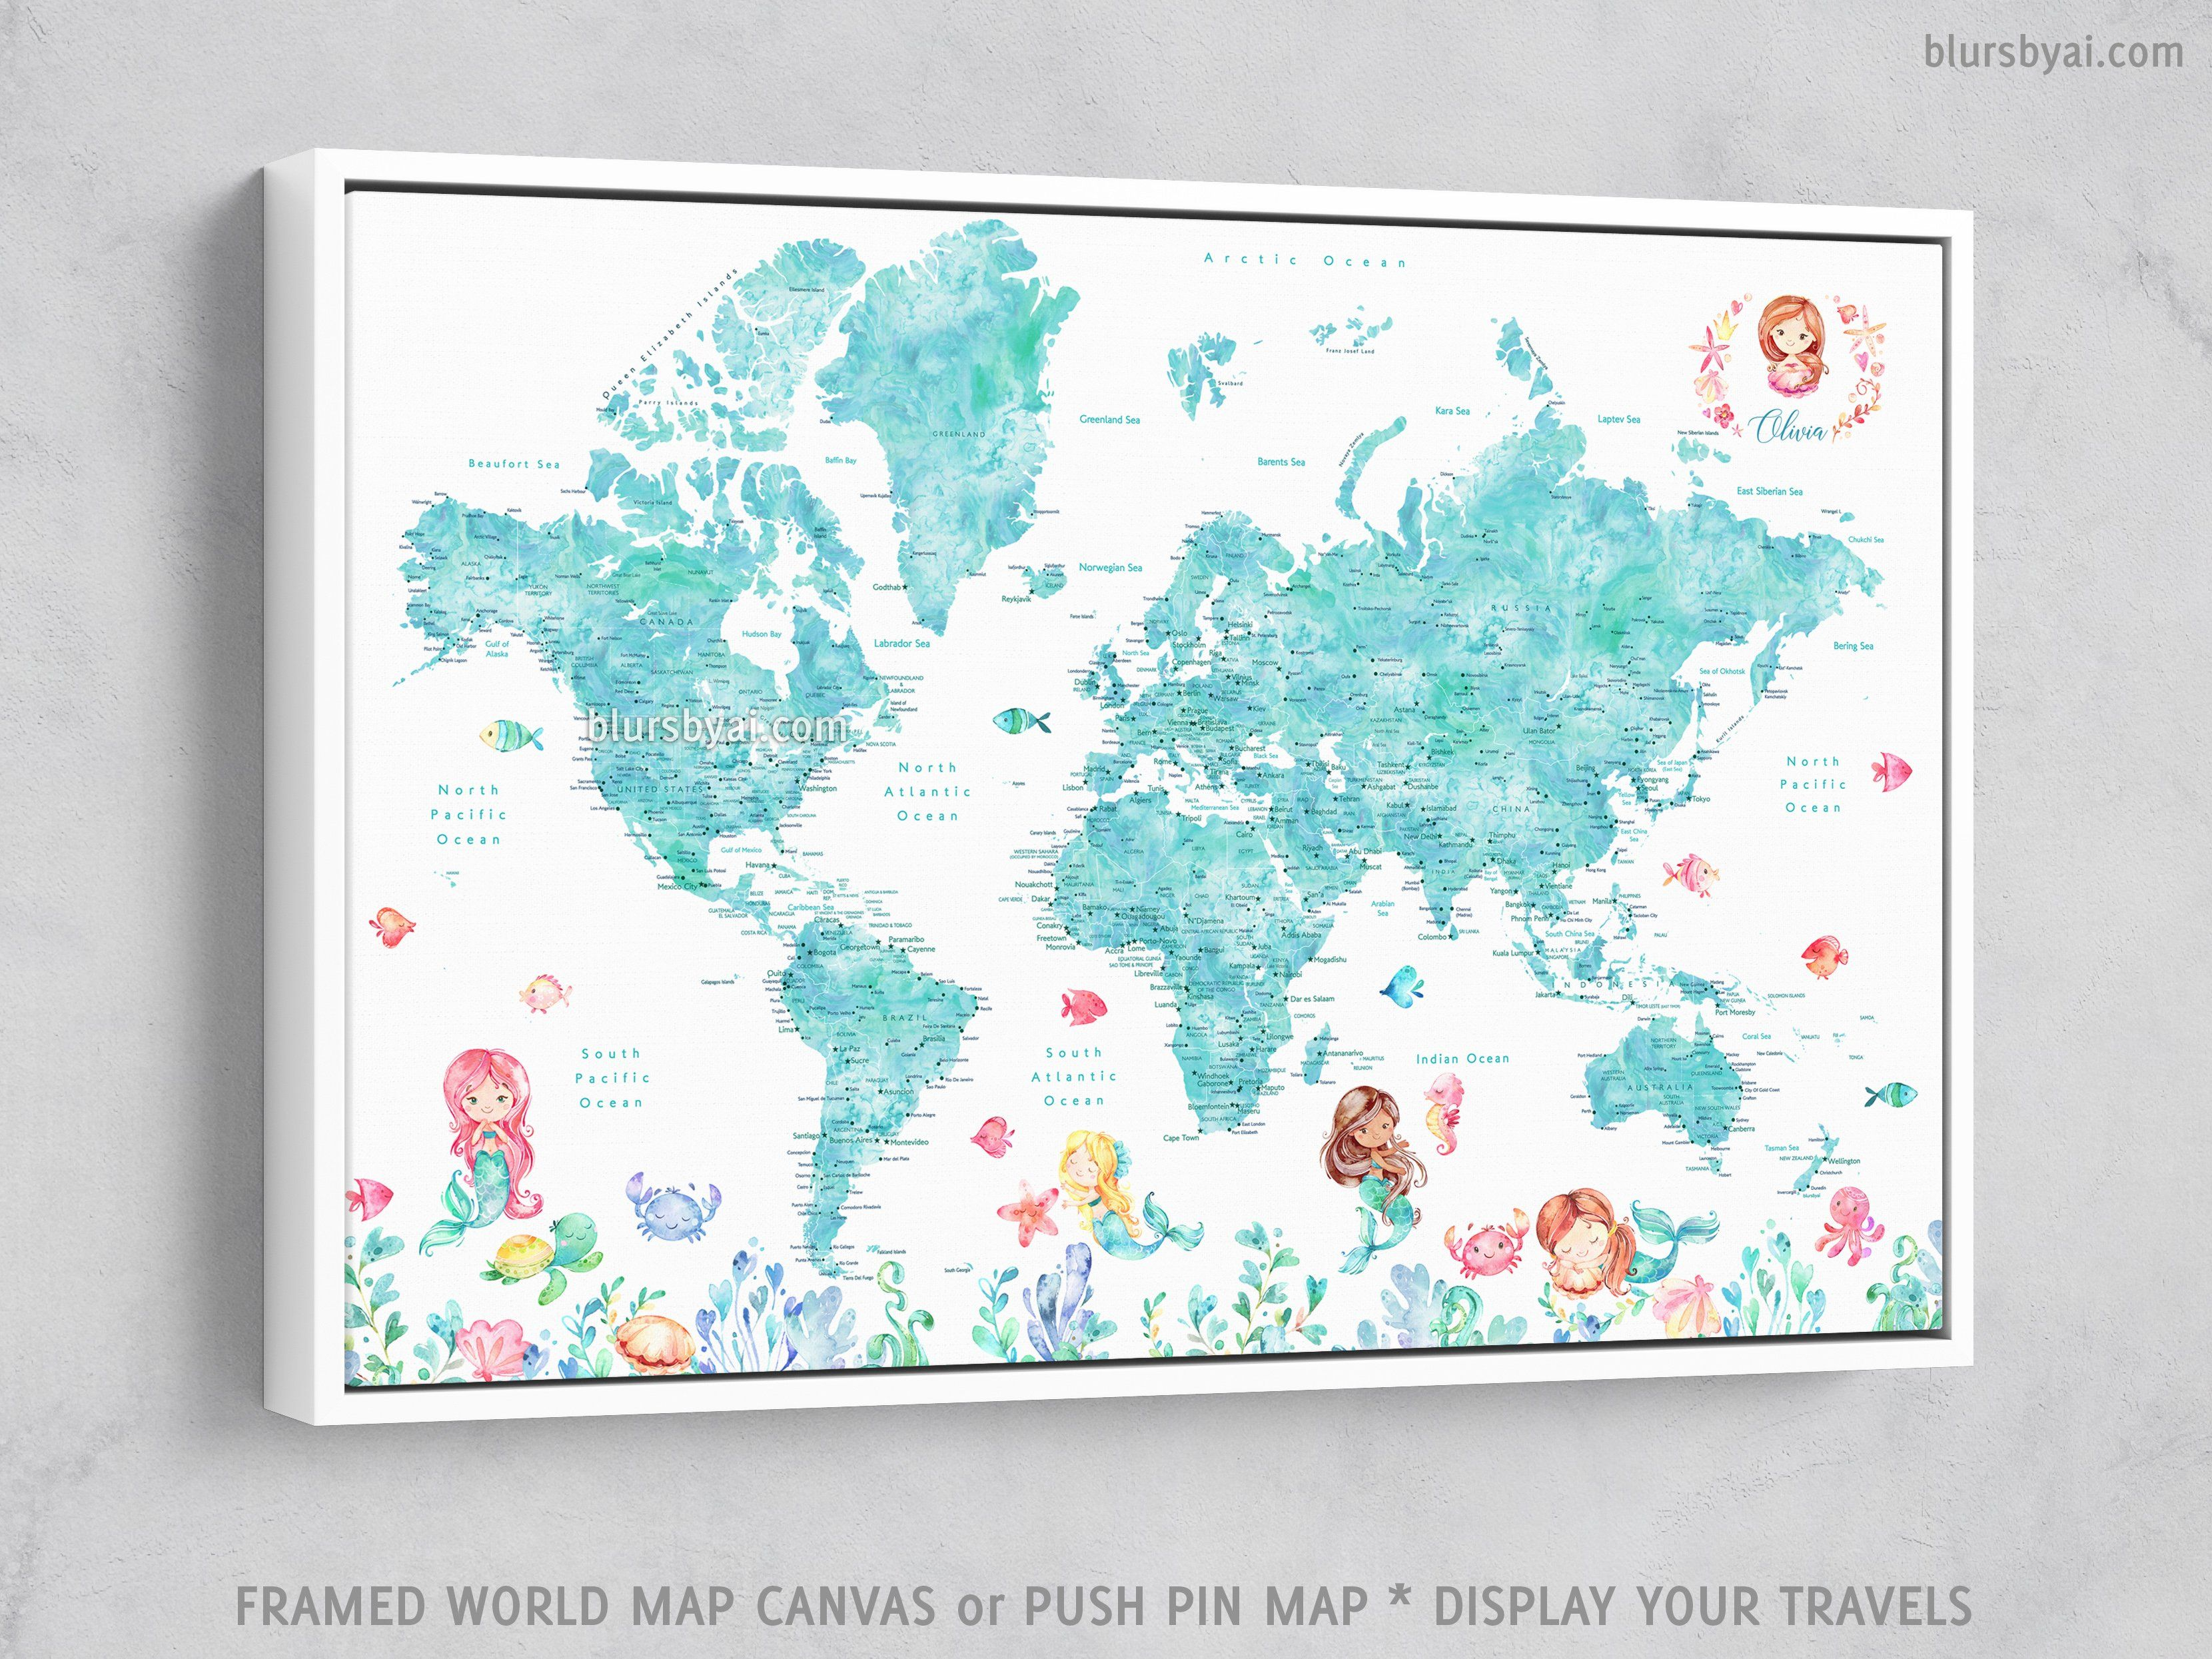 Custom world map with cities and mermaids, canvas print or ... on vibrant world map, kawaii world map, survival world map, fake world map, titanium world map, thank you world map, america's world map, nameless world map, distressed world map, scary world map, neutral tone world map, bunny world map, doodle world map, umbrella world map, silly world map, sick world map, evil world map, wealthy world map, spooky world map,